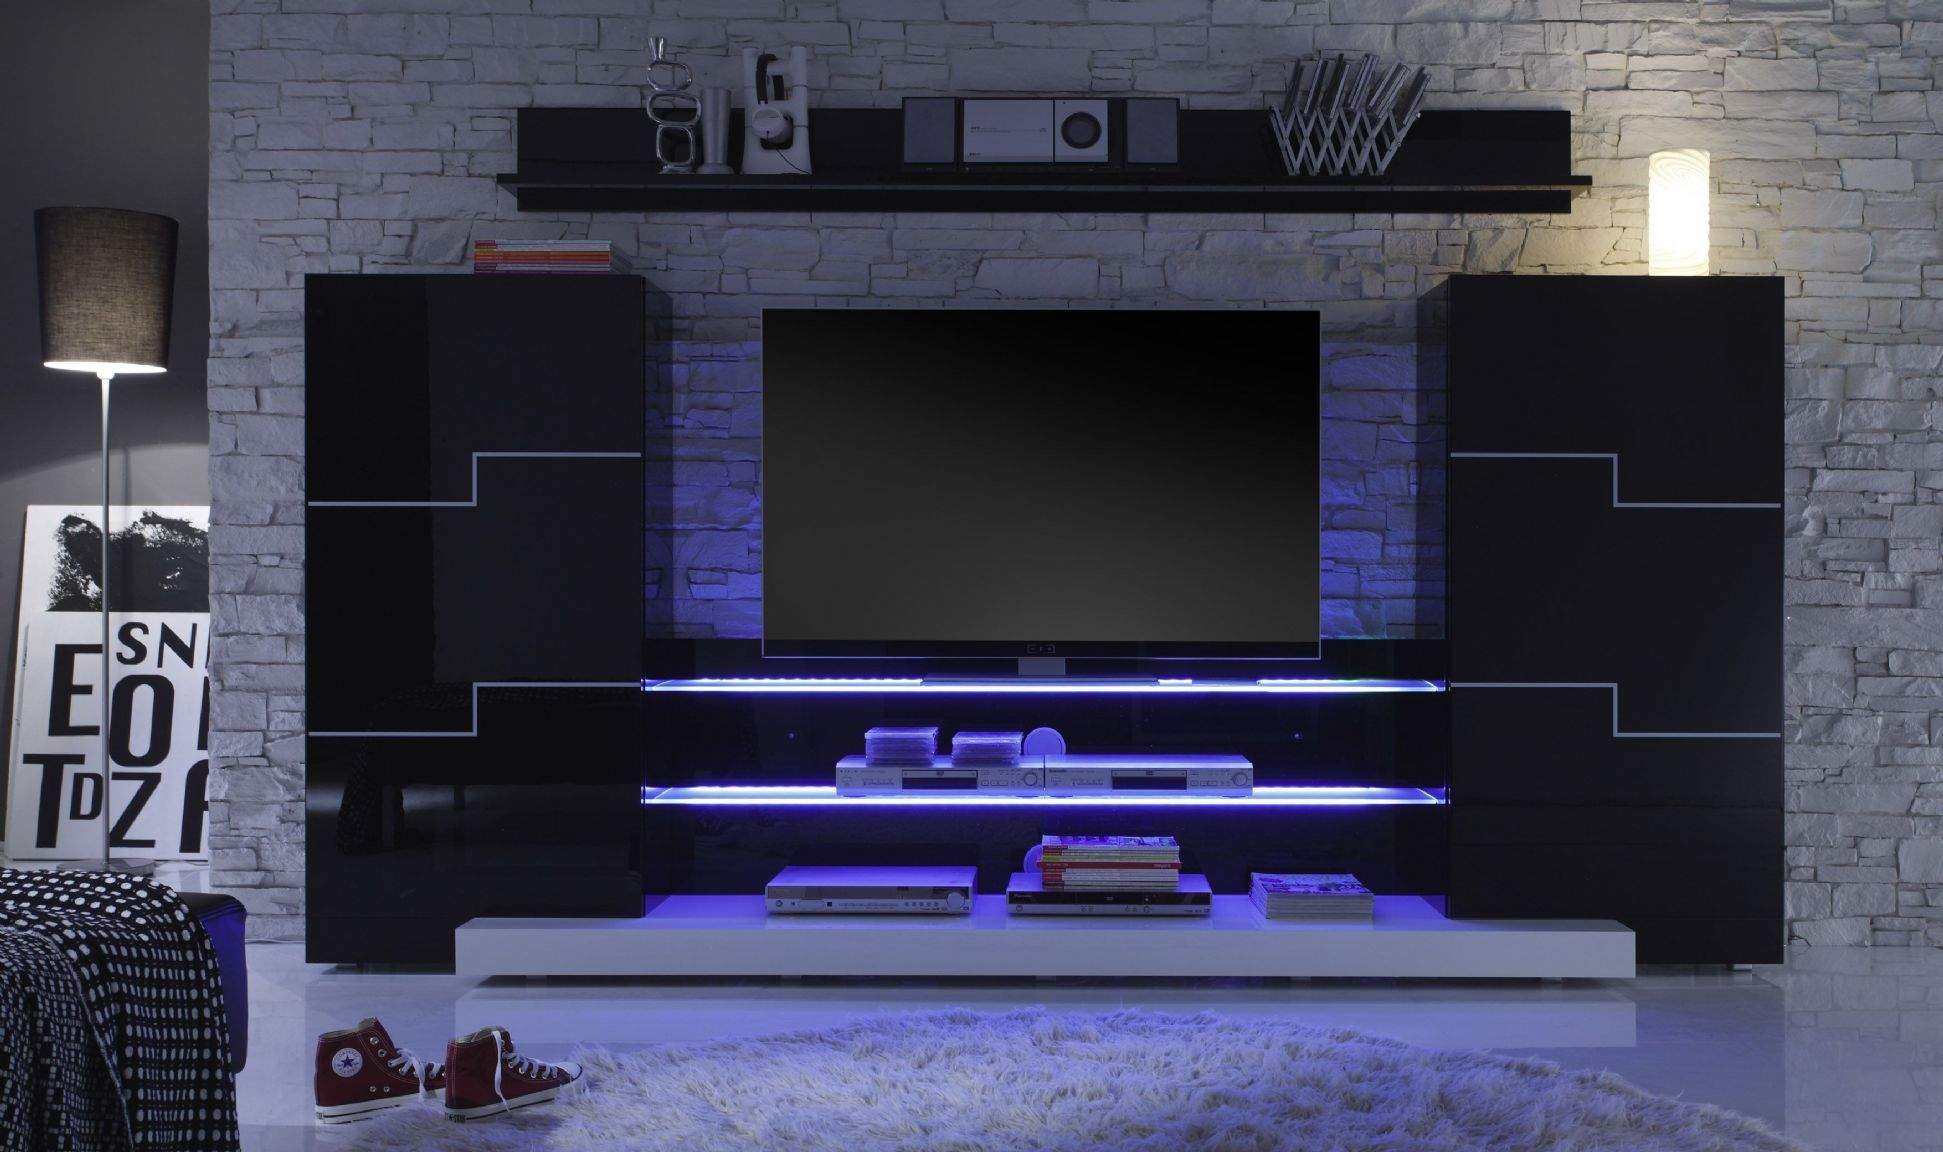 Twin V5 955 09 Mit Zubehoer Frontal 300dpisss Jpg 1 943 1 152 Pixels Tv Showcase Design Tv Wall Design Tv Unit Design